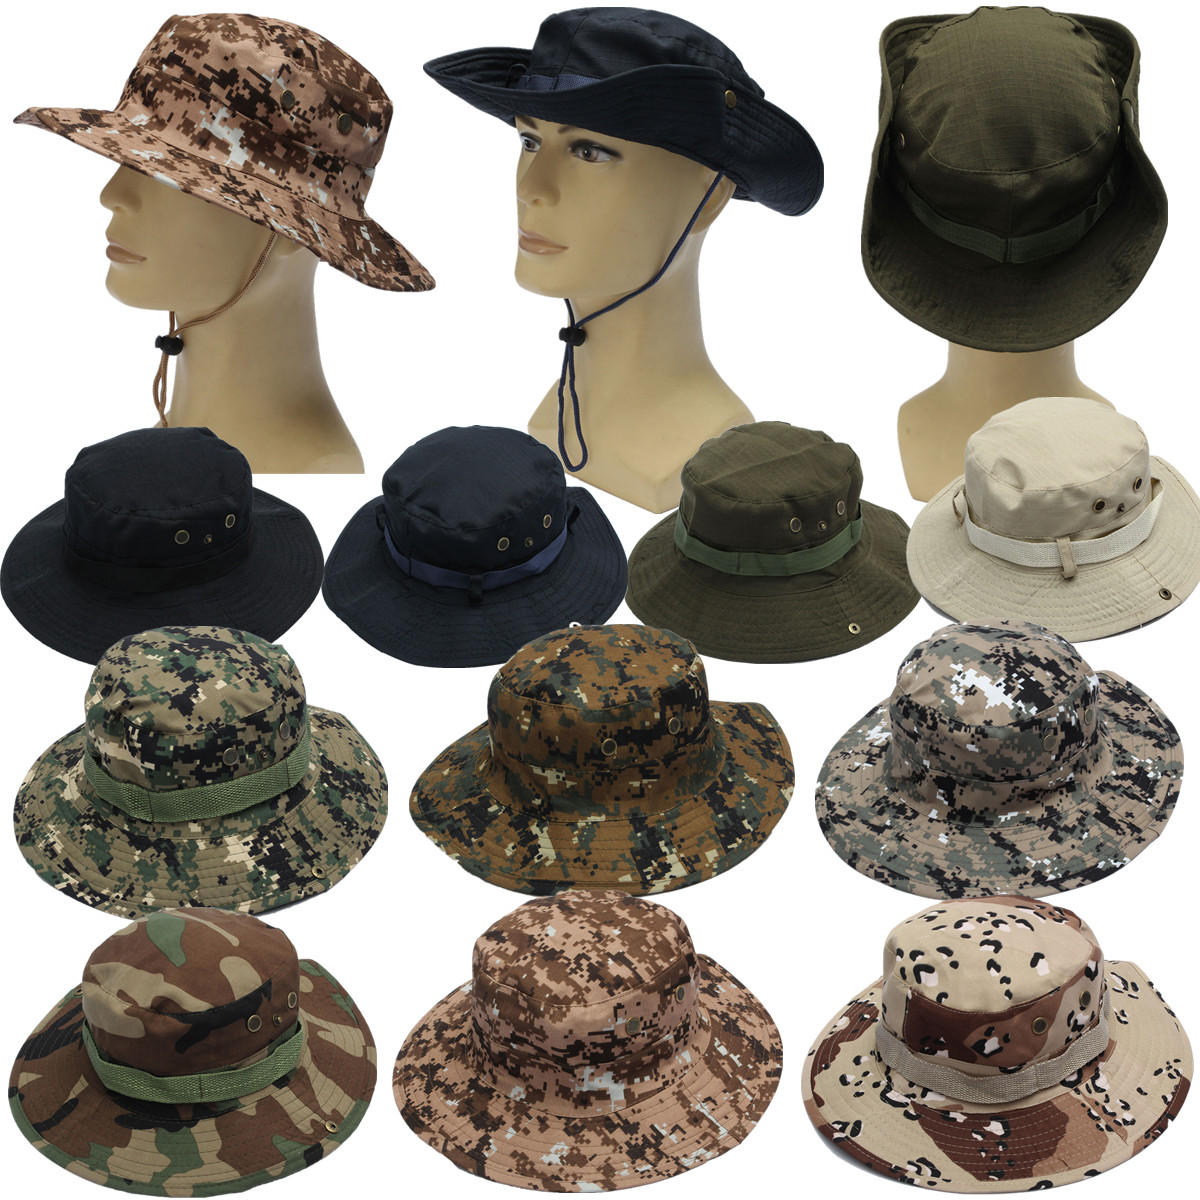 military boonie hat camo cover wide brim camouflage camping hunting cap at  Banggood sold out 4cd30e56737